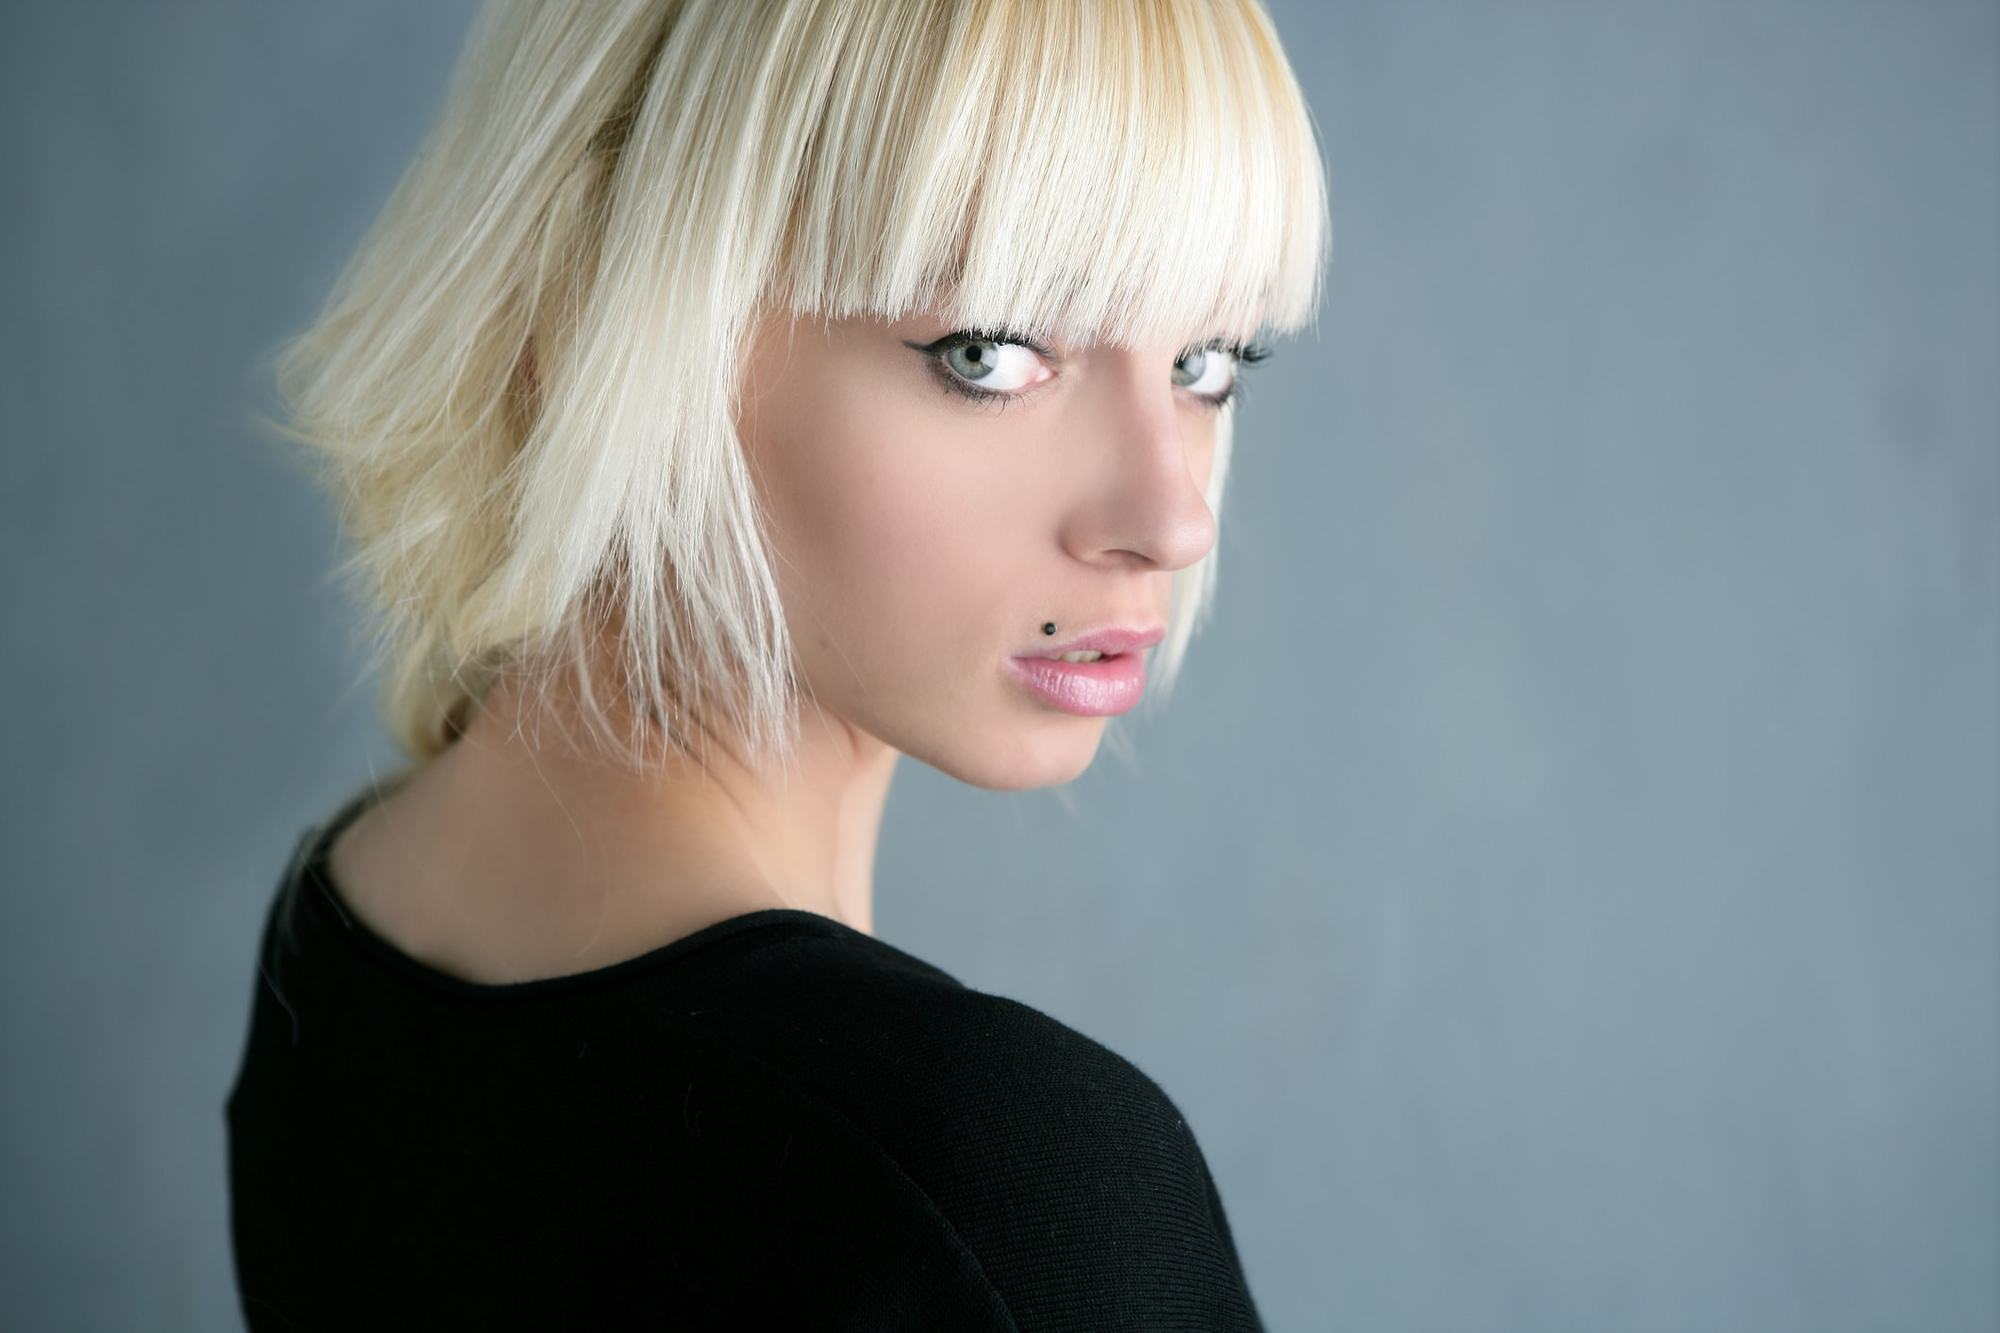 bleached hair styles bangs 18 ways to wear this edgy style 2720